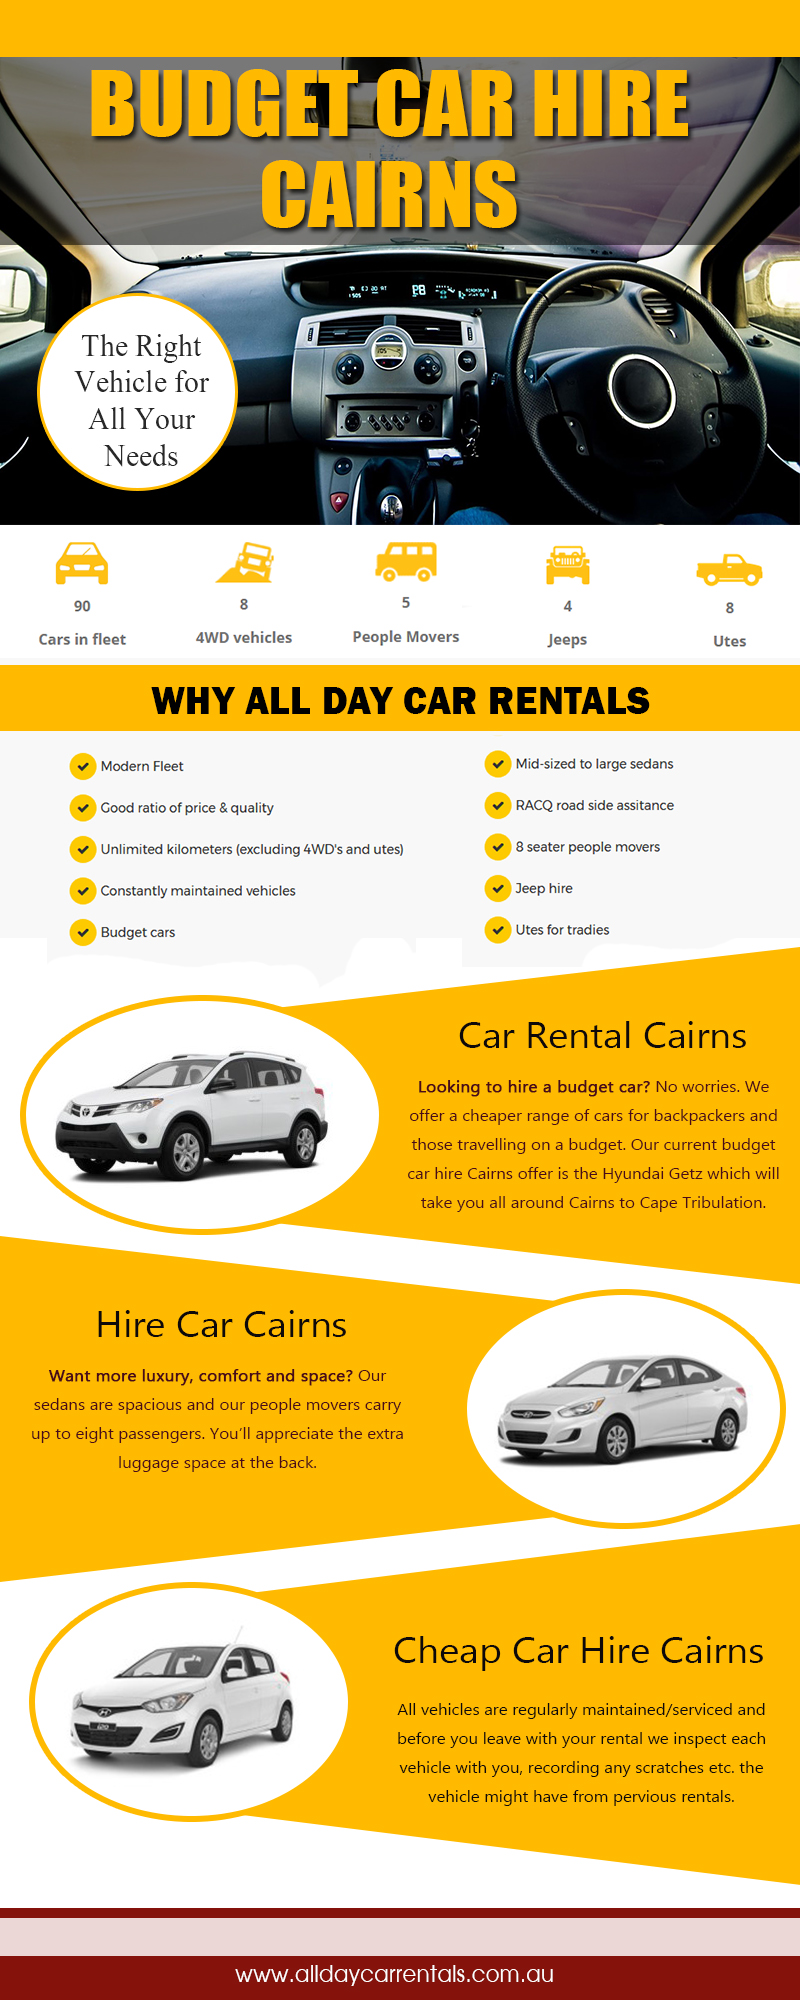 Budget car hire Cairns